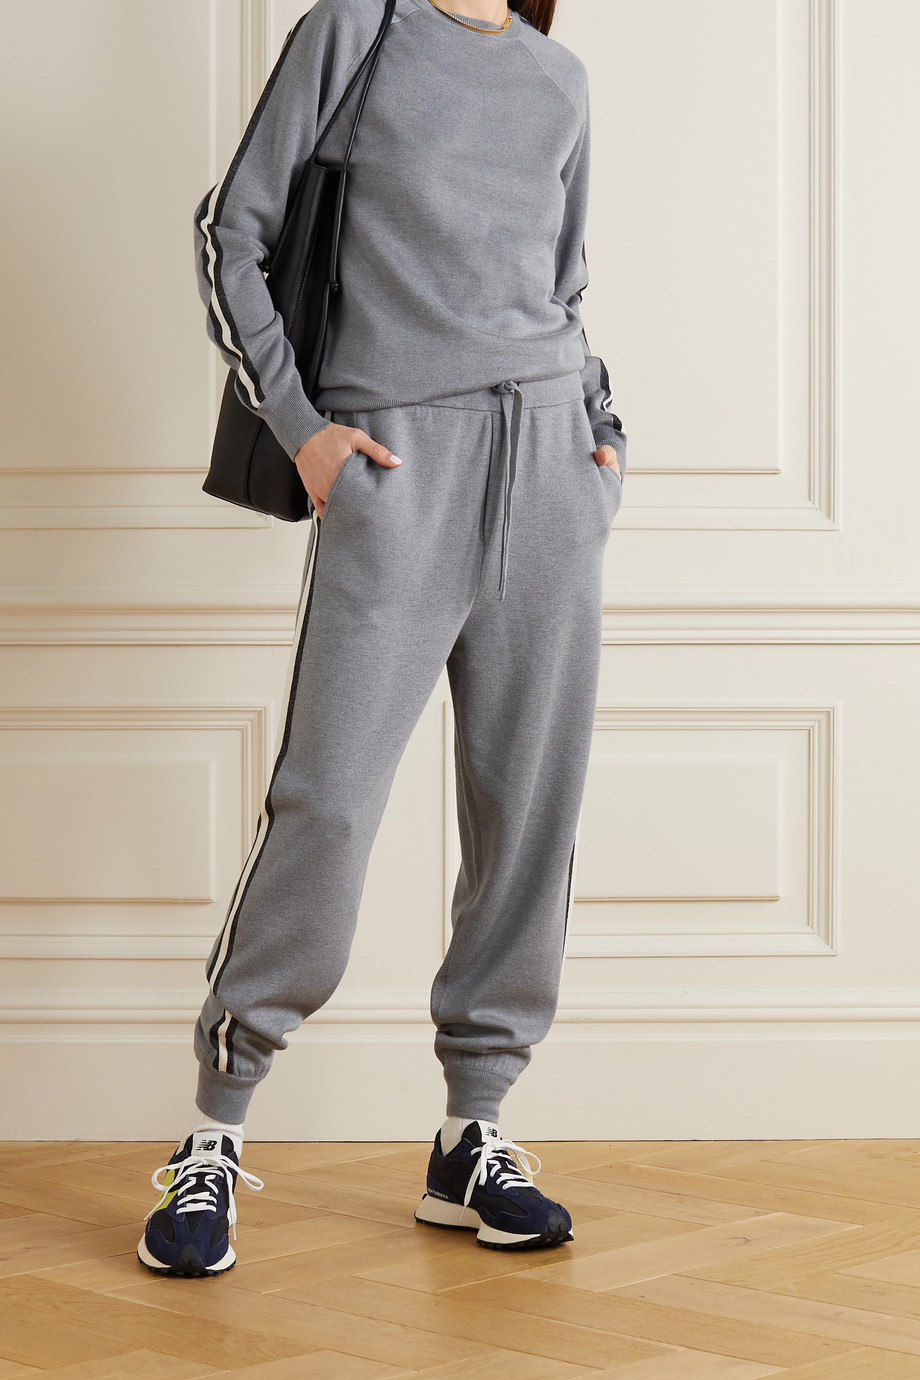 Olivia von Halle Missy London striped silk-blend sweatshirt and track pants set